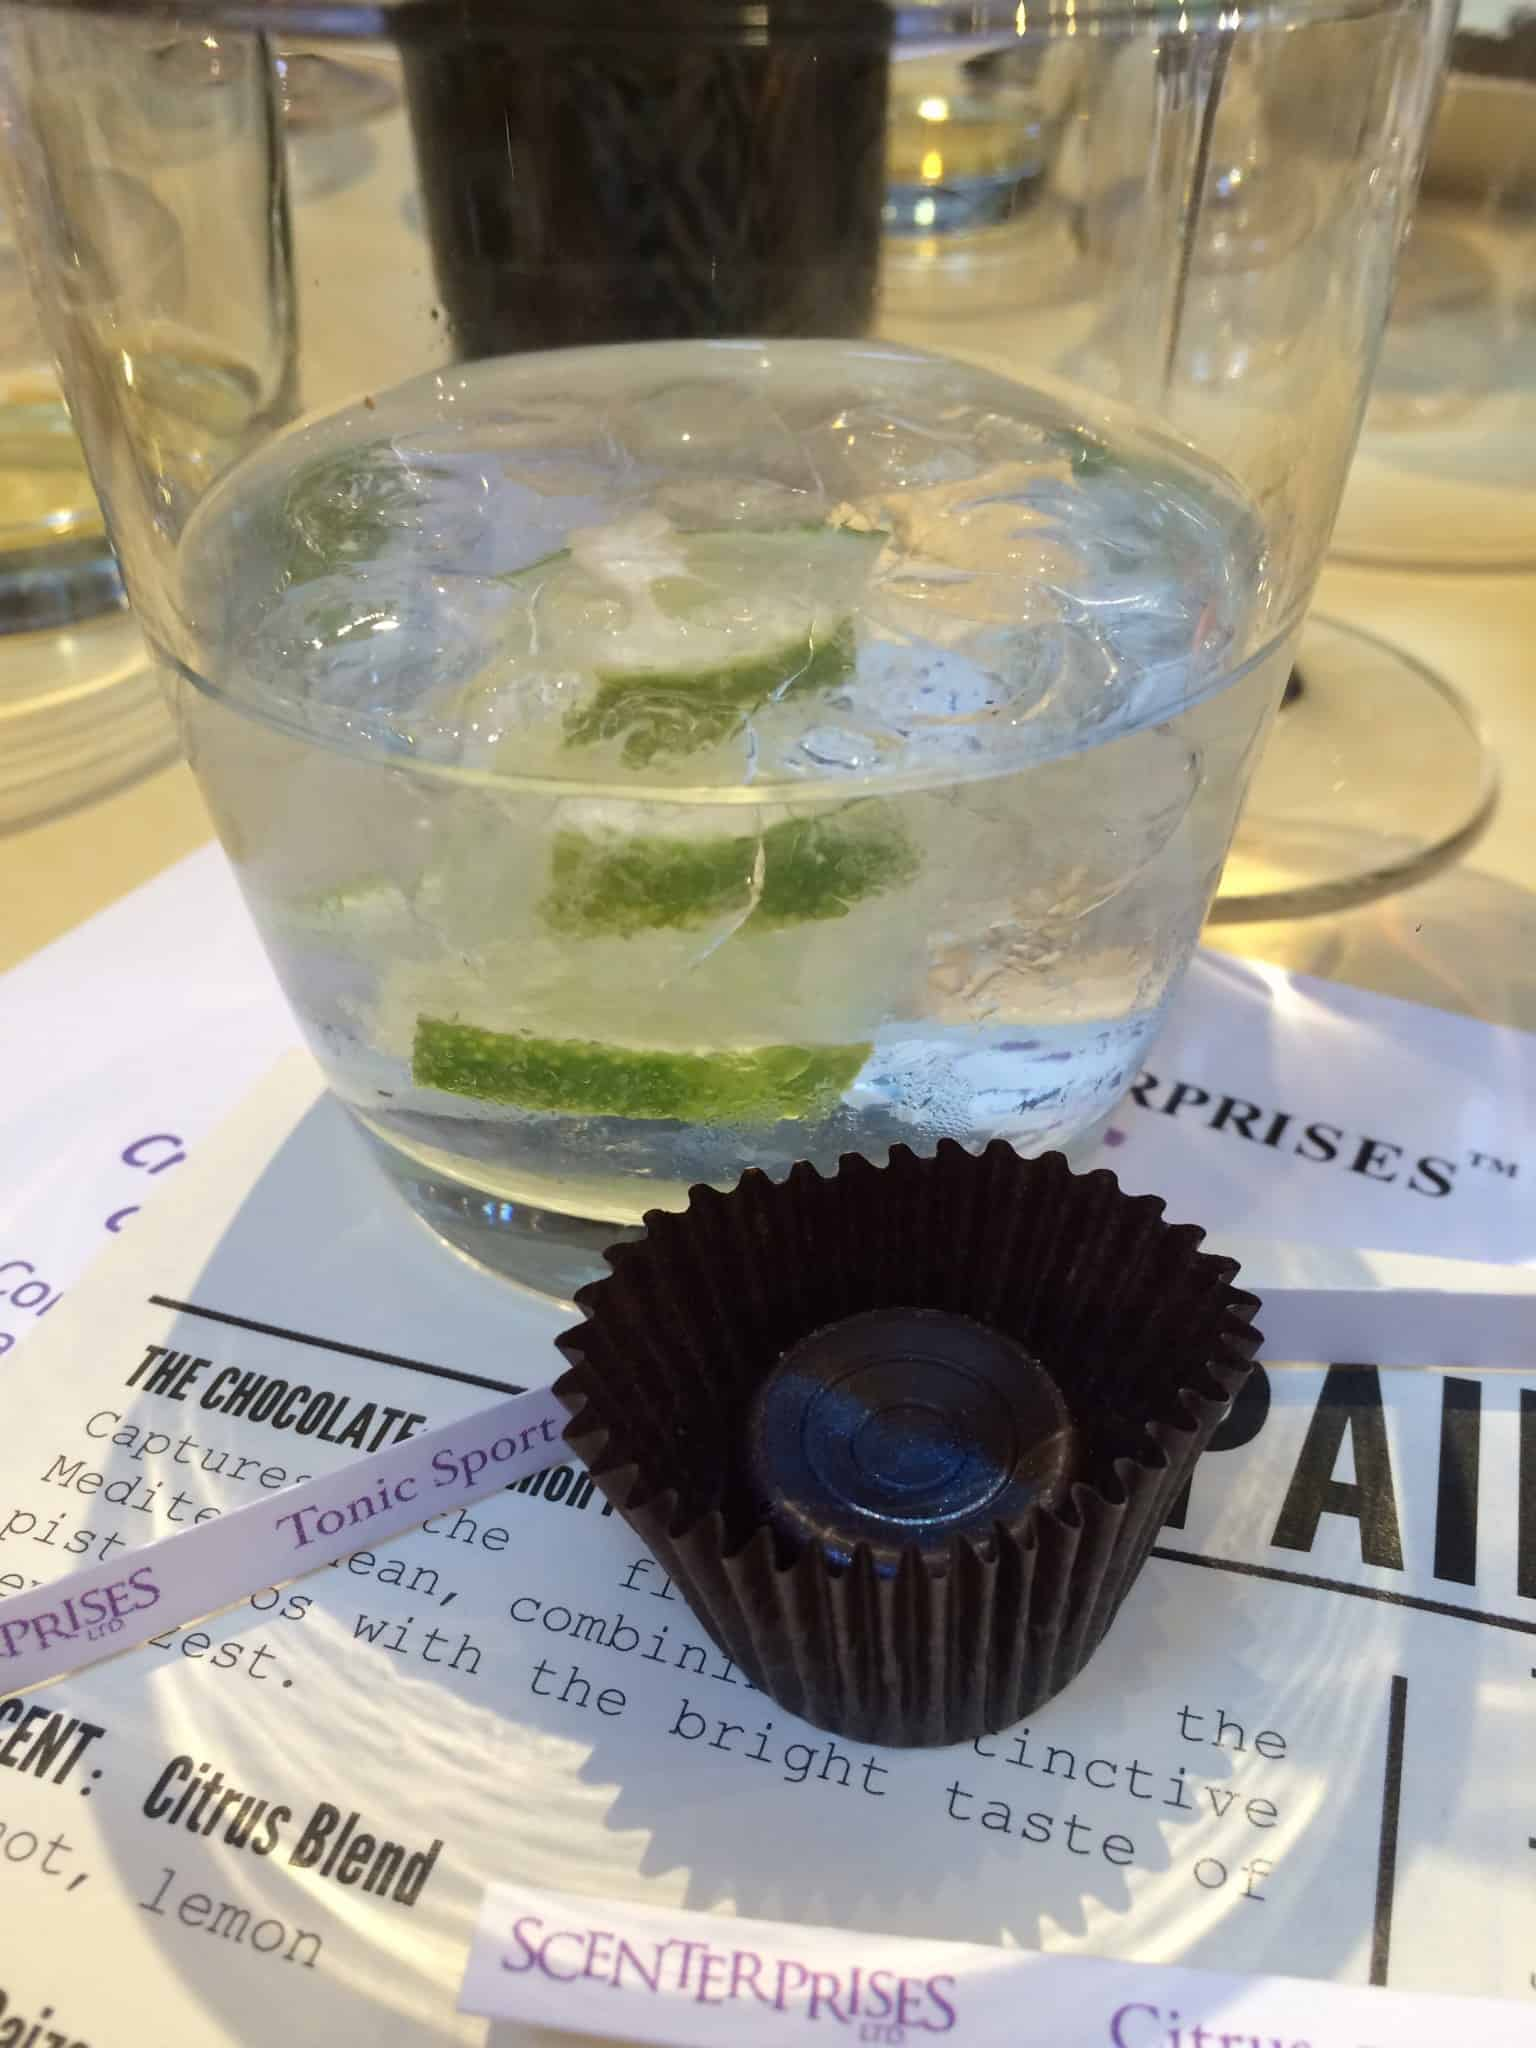 Chocolate: Juniper Scent: Tonic Sport Drink: Perry's Tot Gin & Tonic